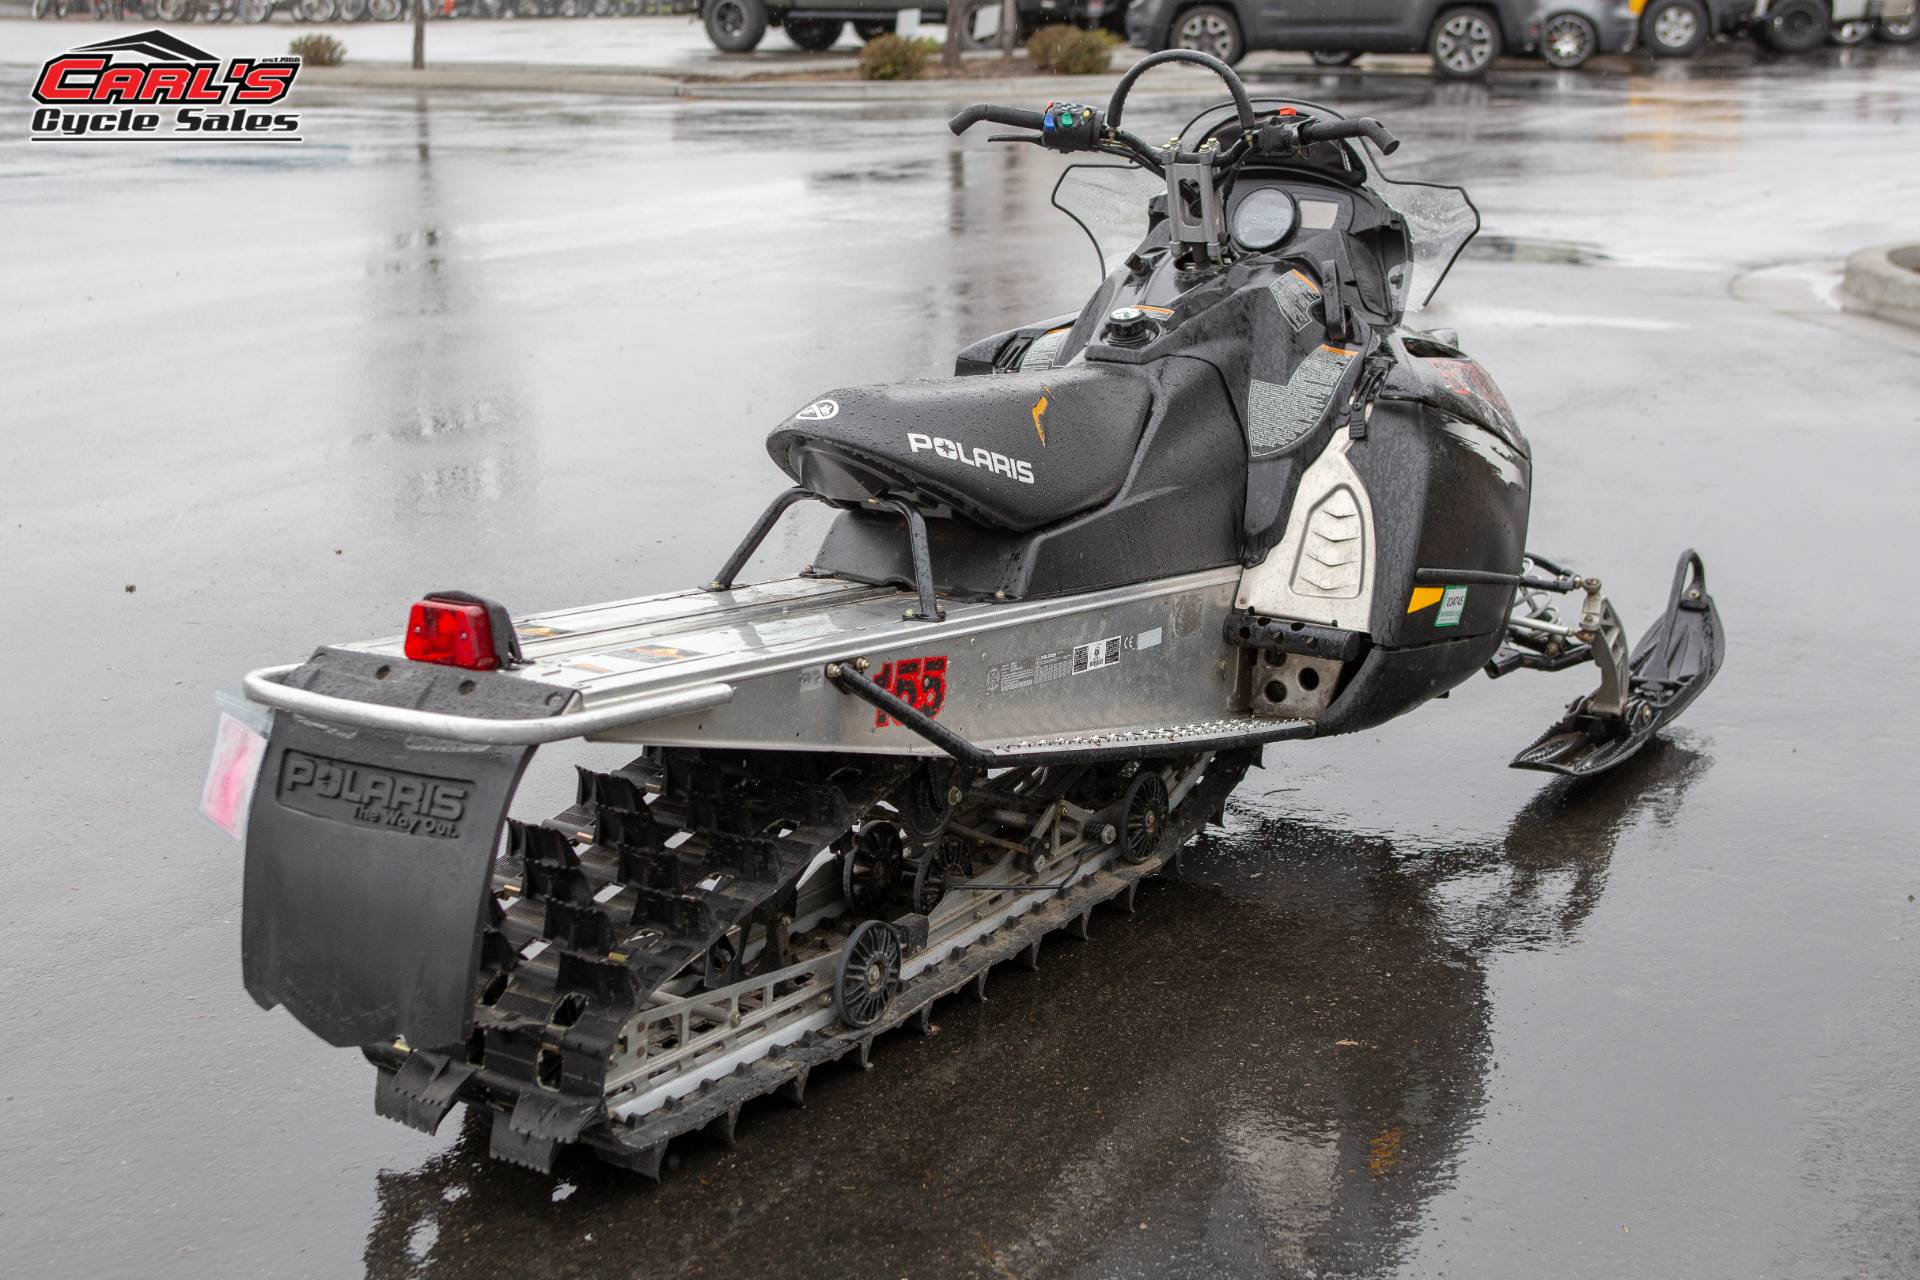 2009 Polaris 700  RMK 155 in Boise, Idaho - Photo 5